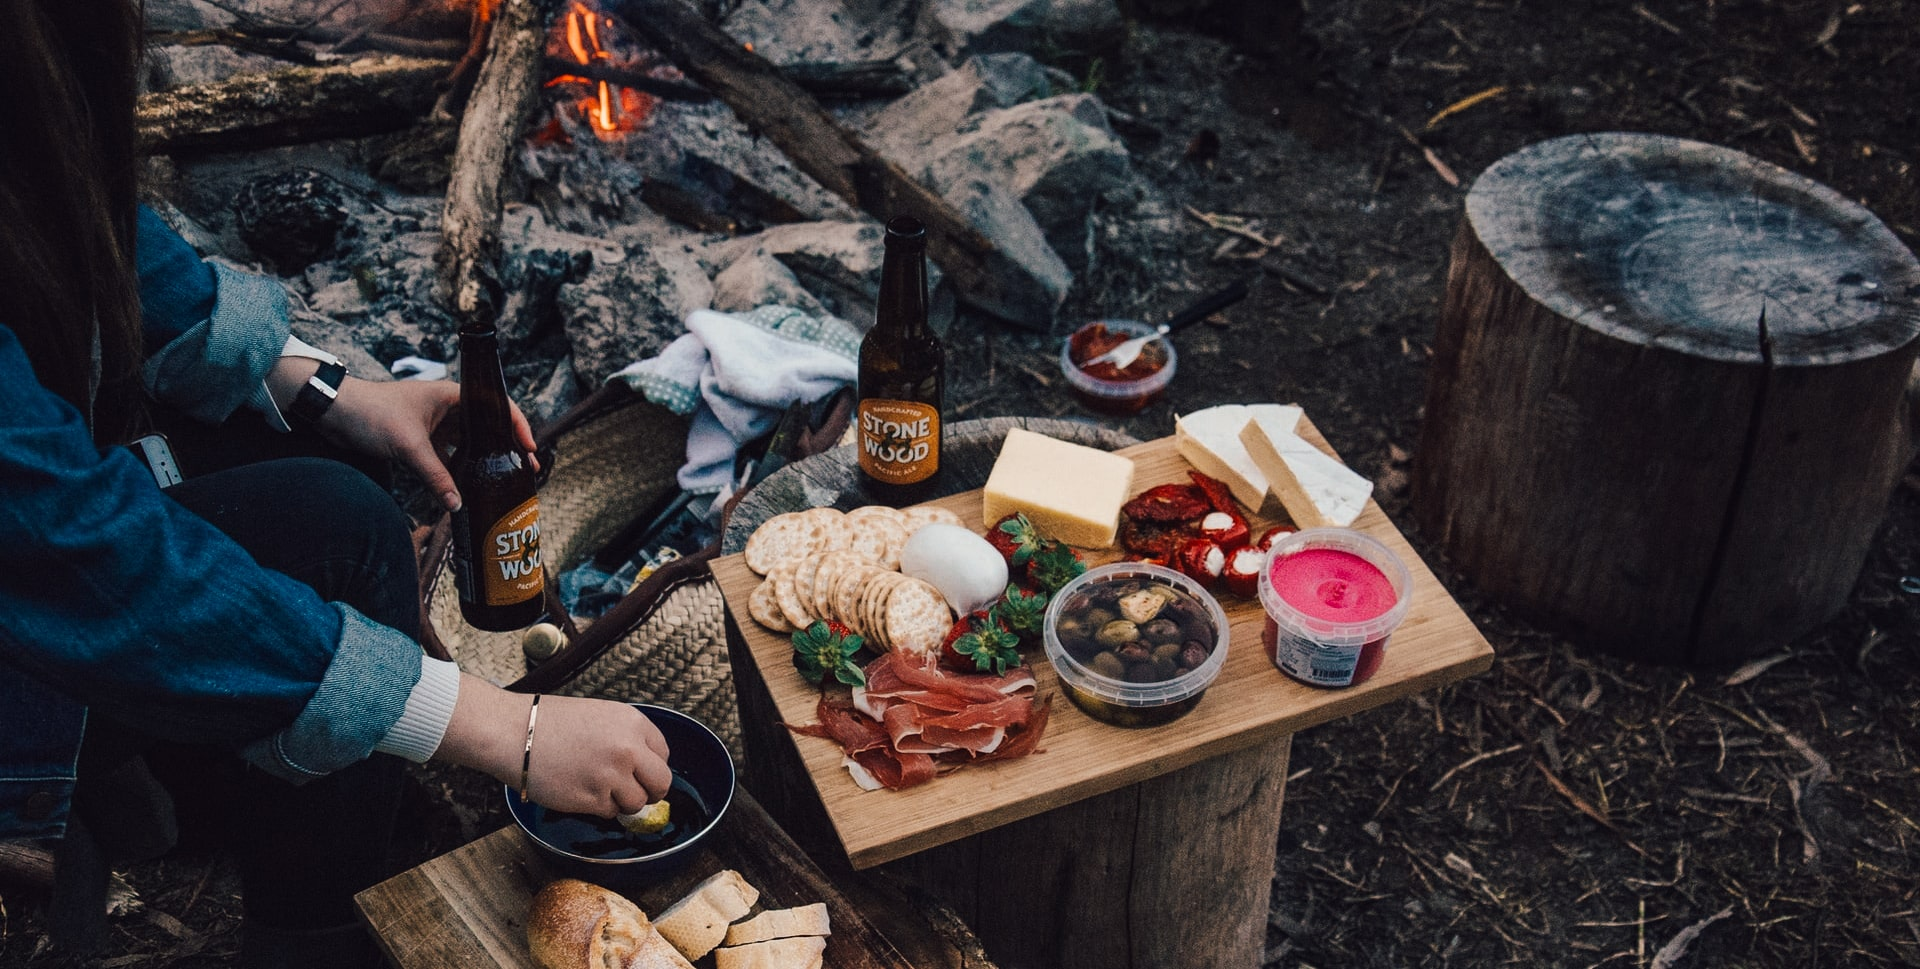 Food platter beside a campfire